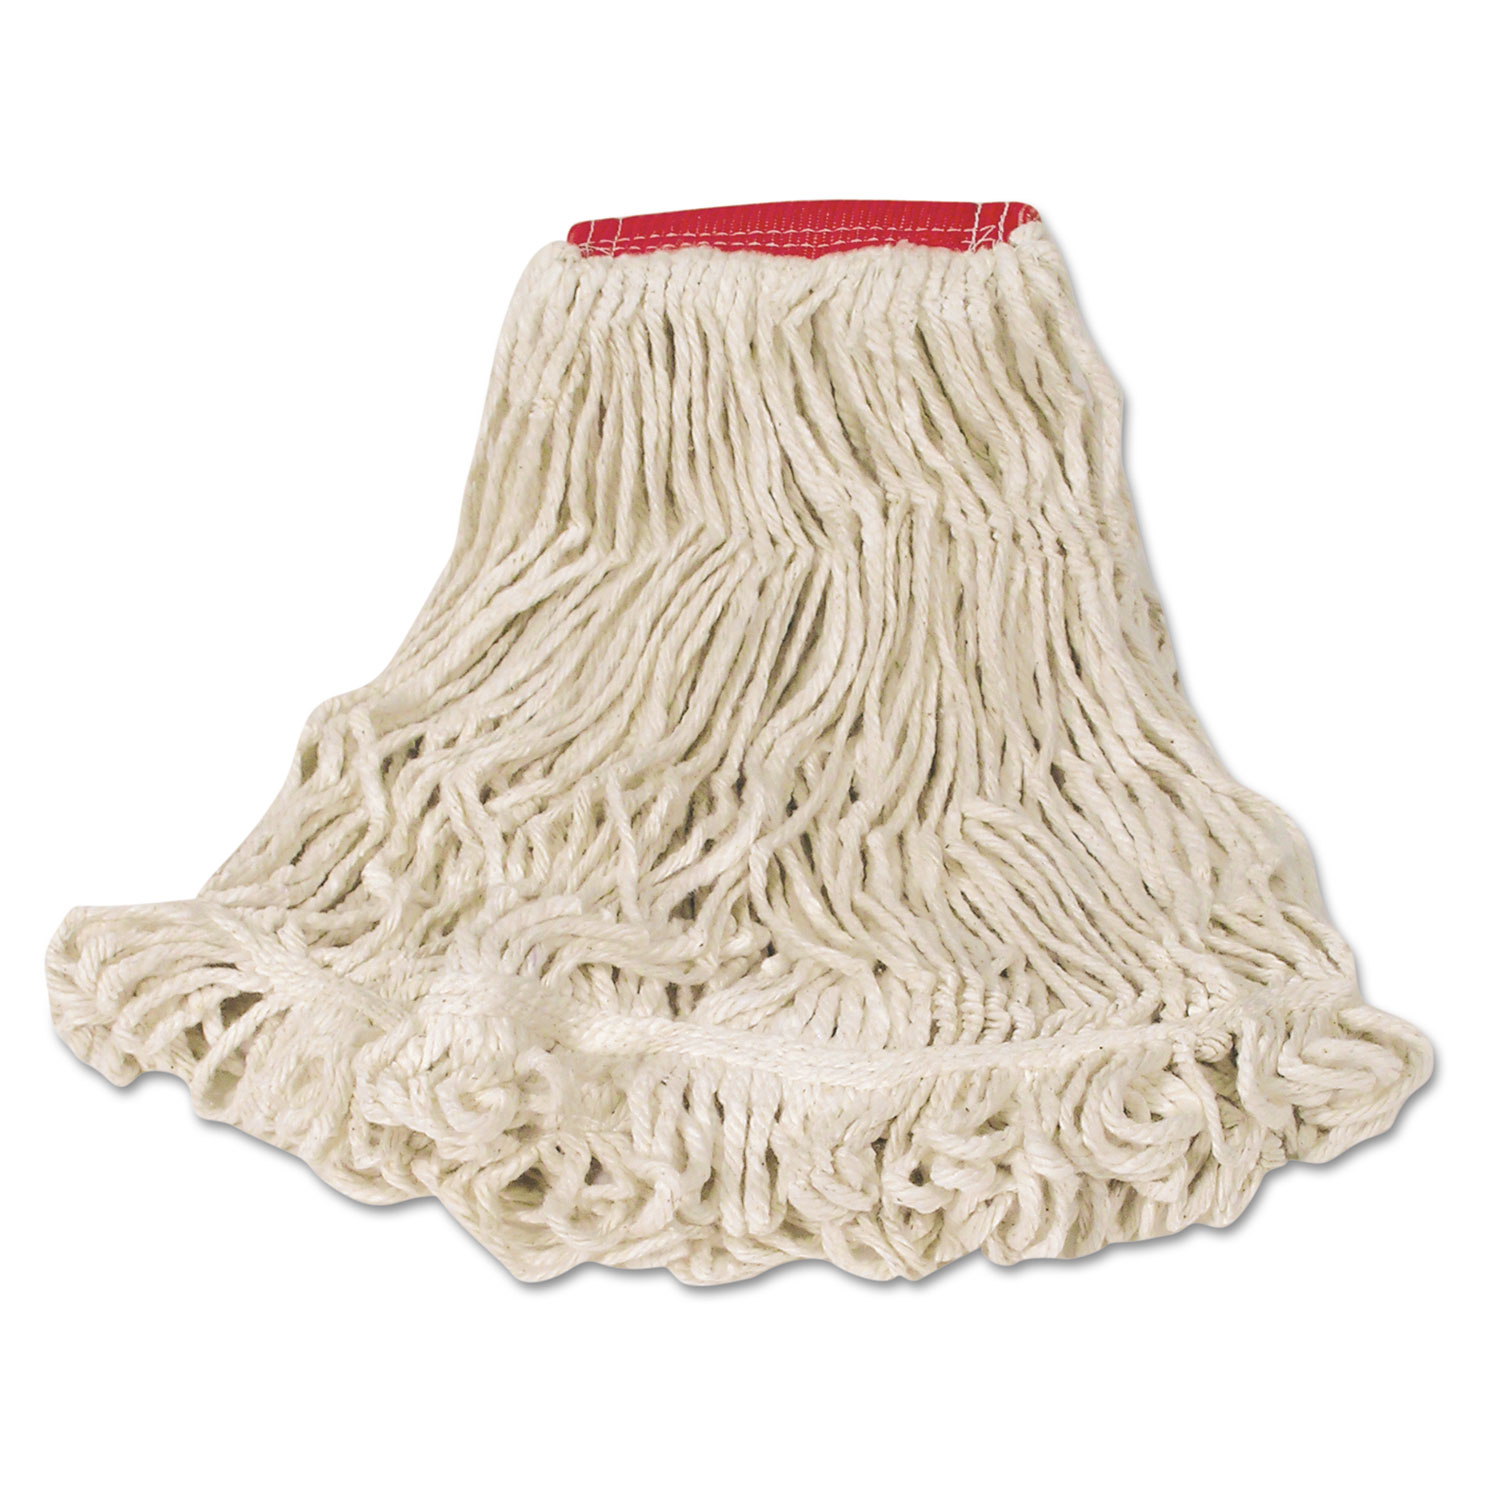 Super Stitch Looped End Wet Mop Head Cotton Synthetic Large Size Red White Careplusworkforcesolutions Org